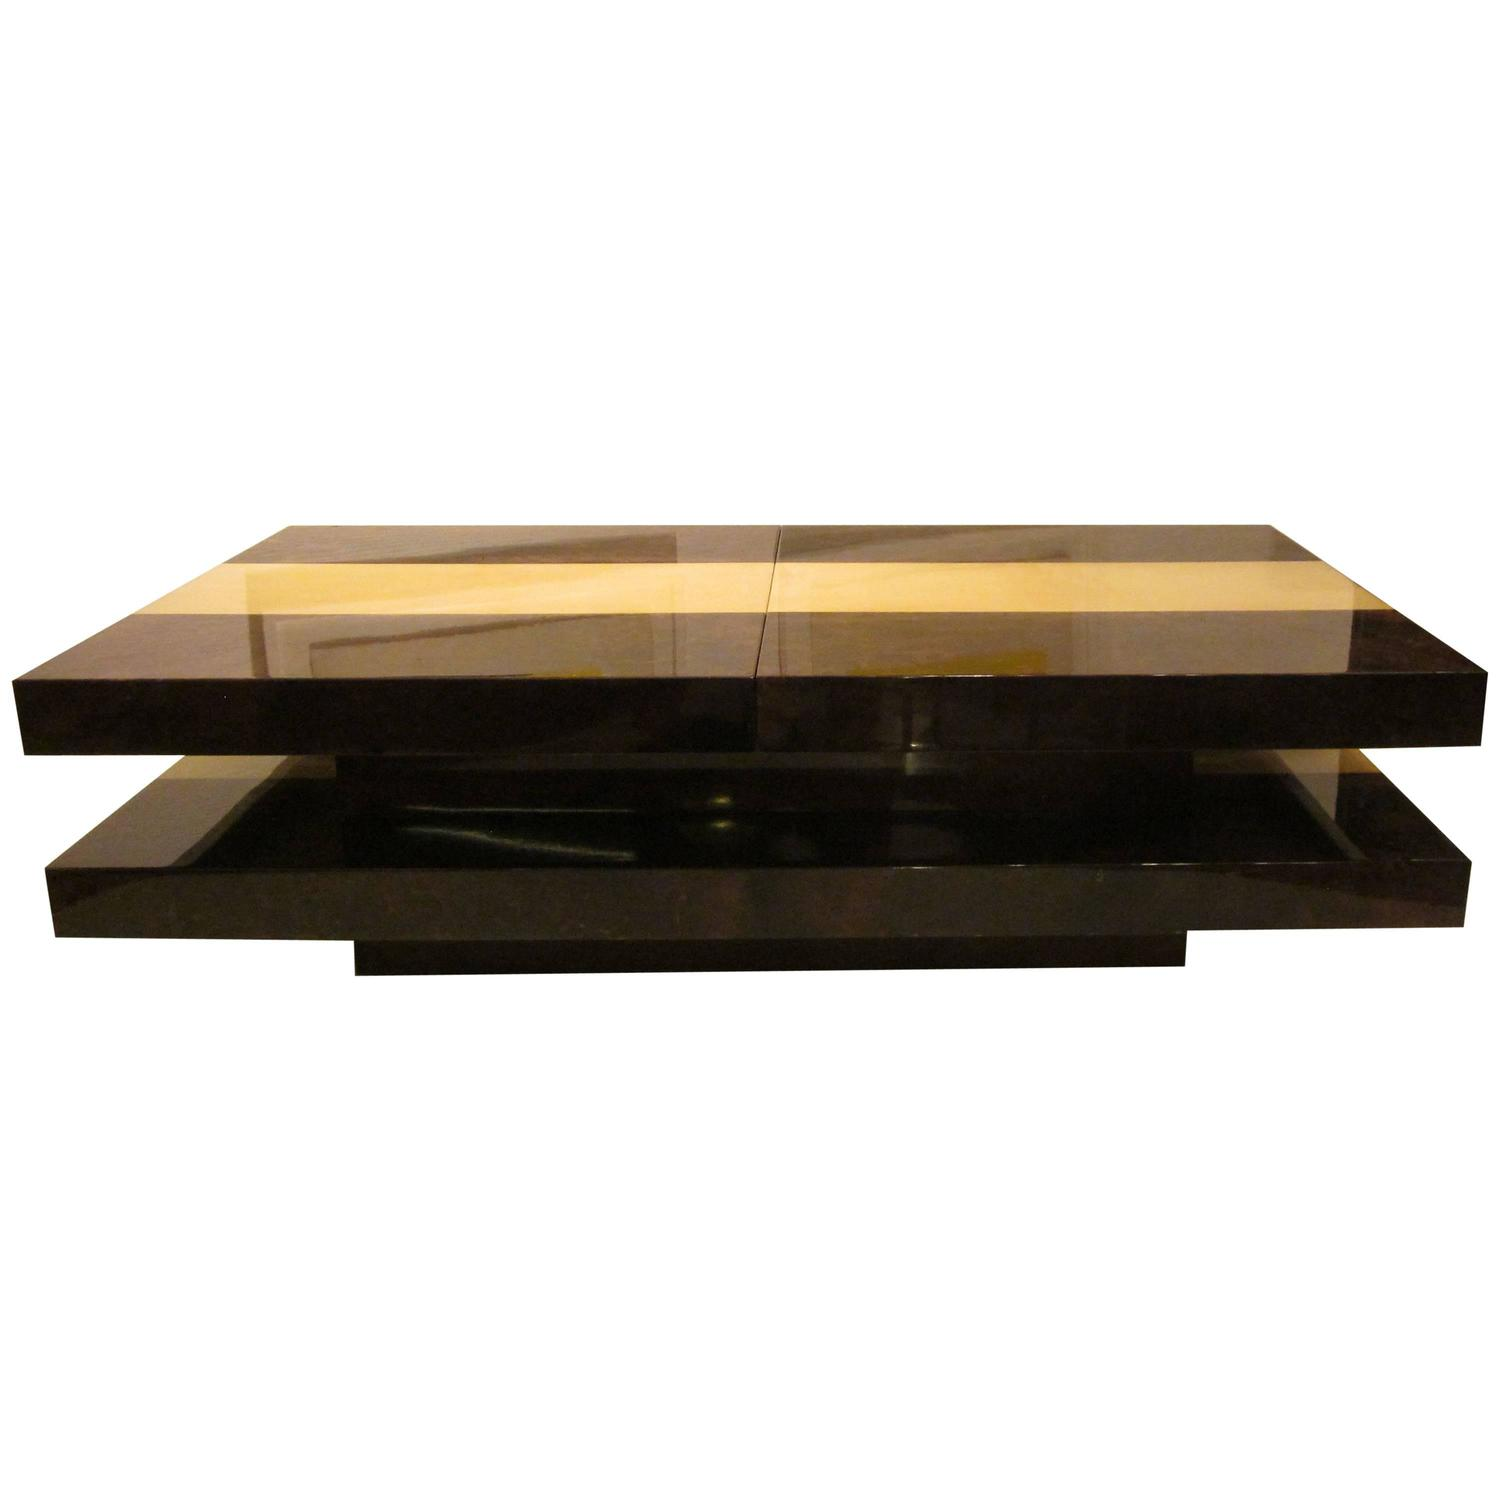 Aldo Tura Sliding Open Coffee Table Italy 1960s For Sale At 1stdibs